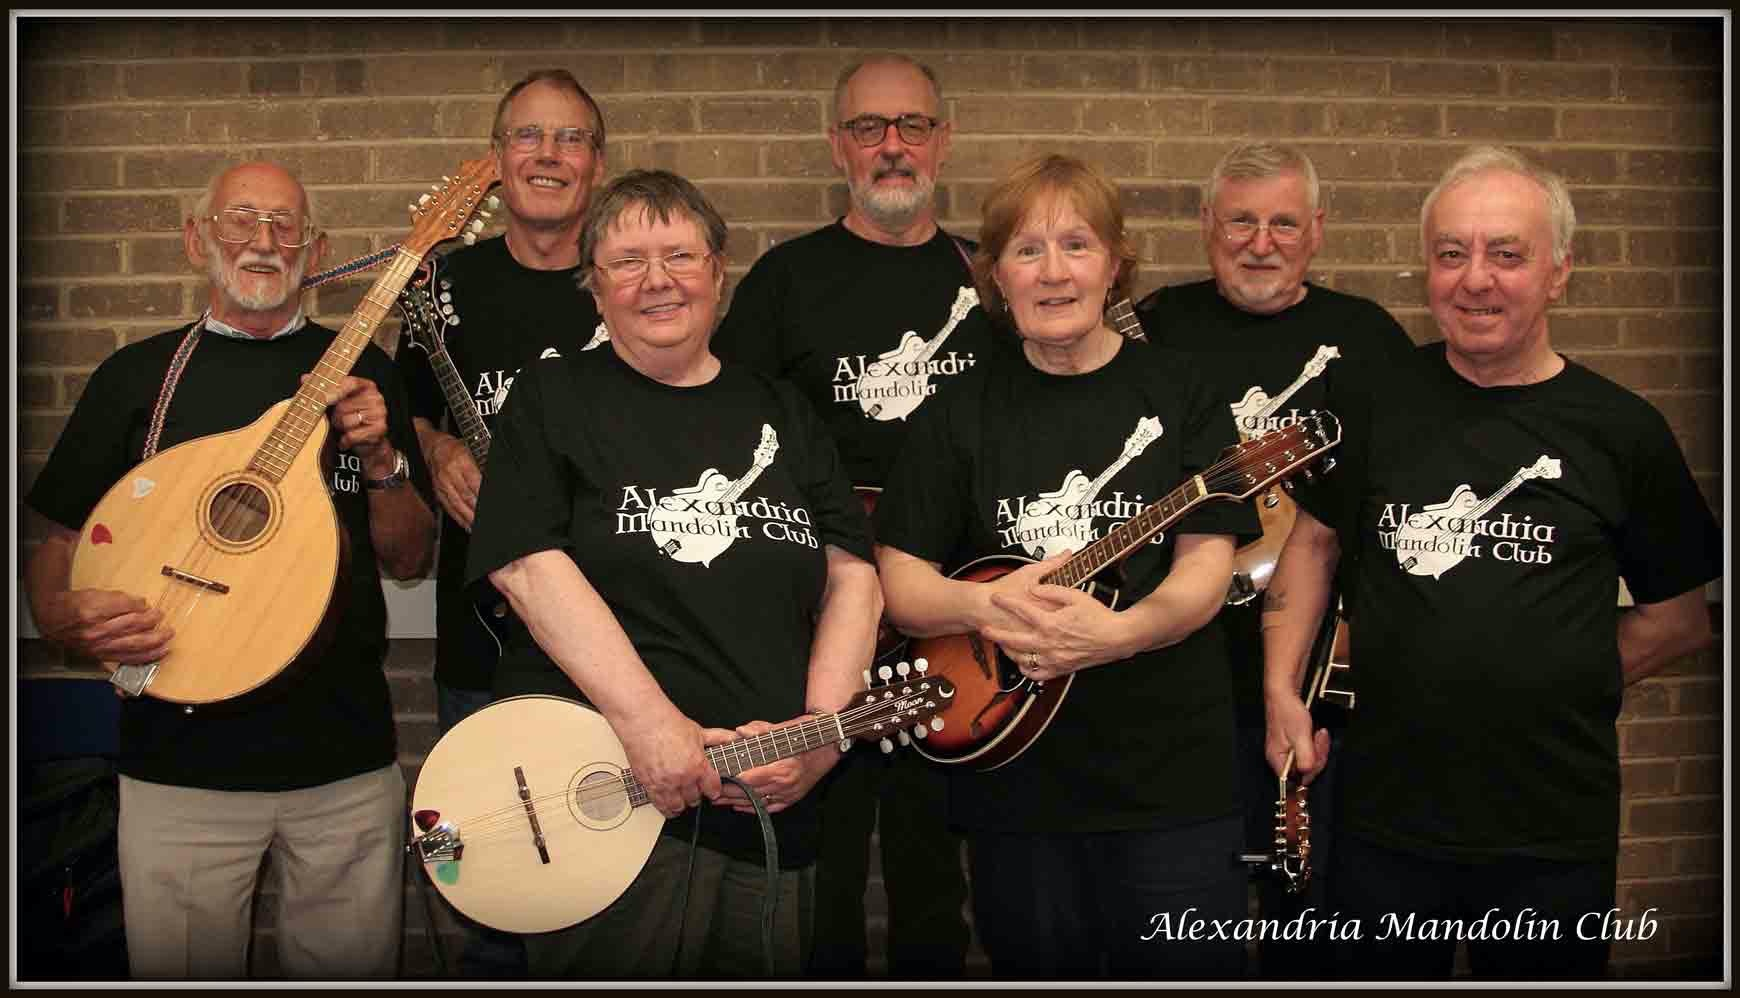 Alexandria Mandolin Club Group Photo